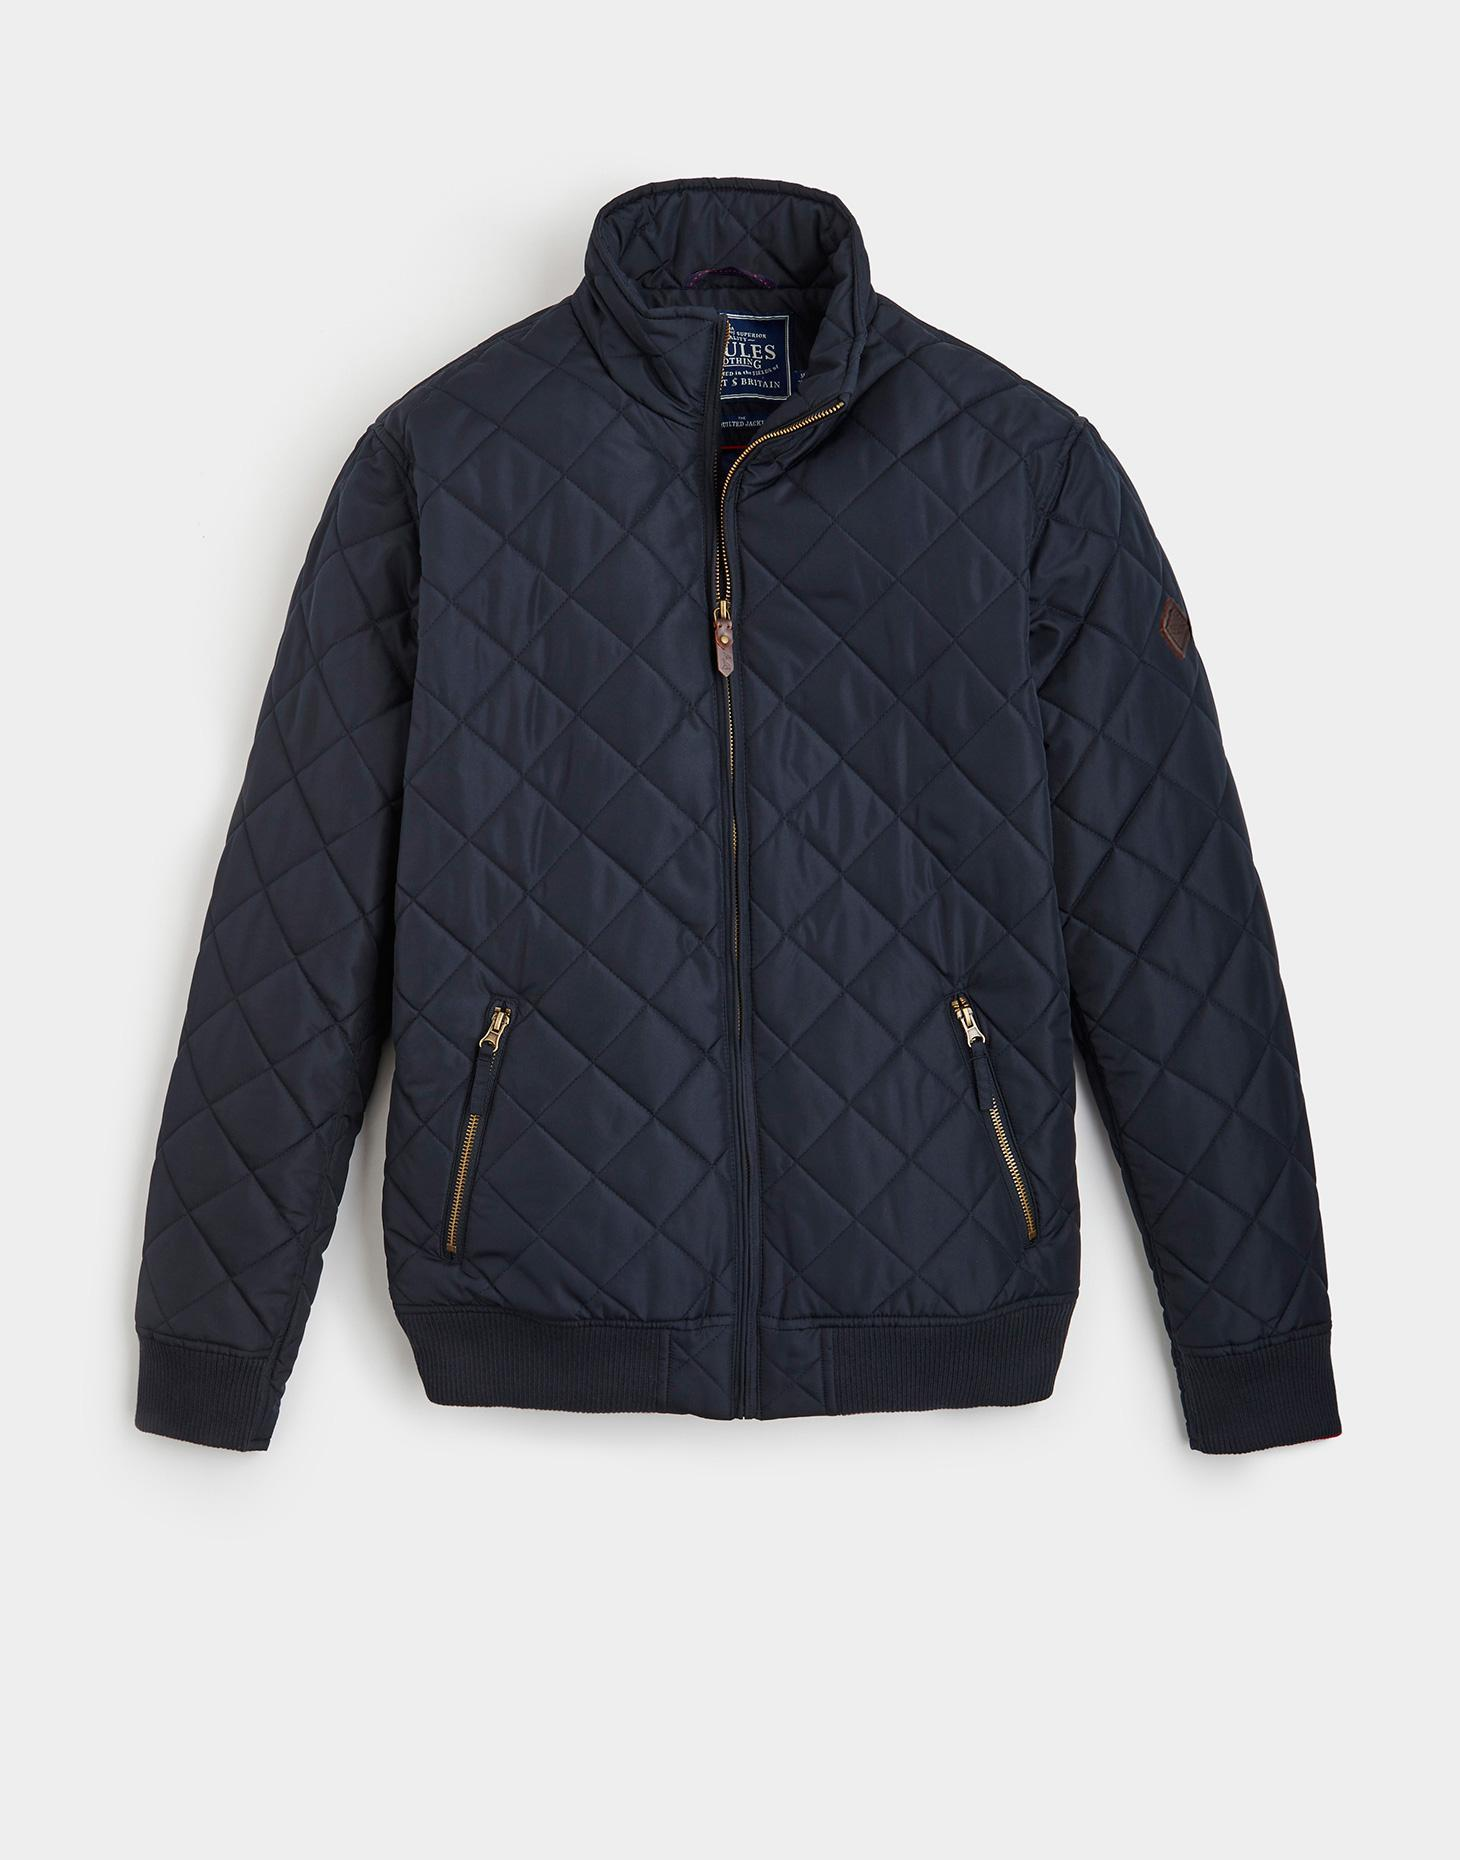 Joules Marine Navy HANBURY Quilted Bomber Jacket